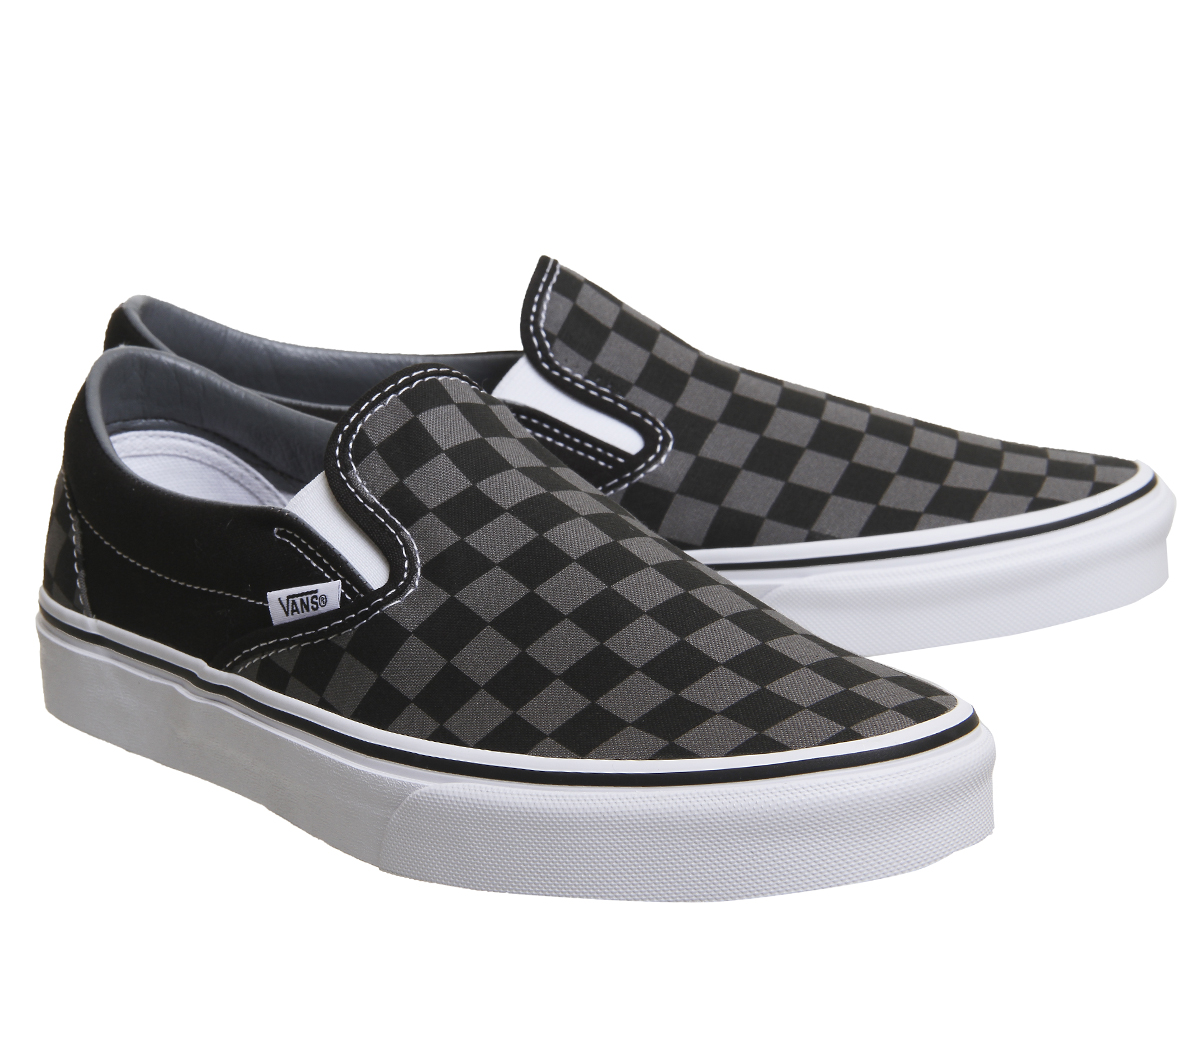 d2033f4835 Mens Vans Vans Classic Slip On Trainers Black Pewter Check Trainers ...